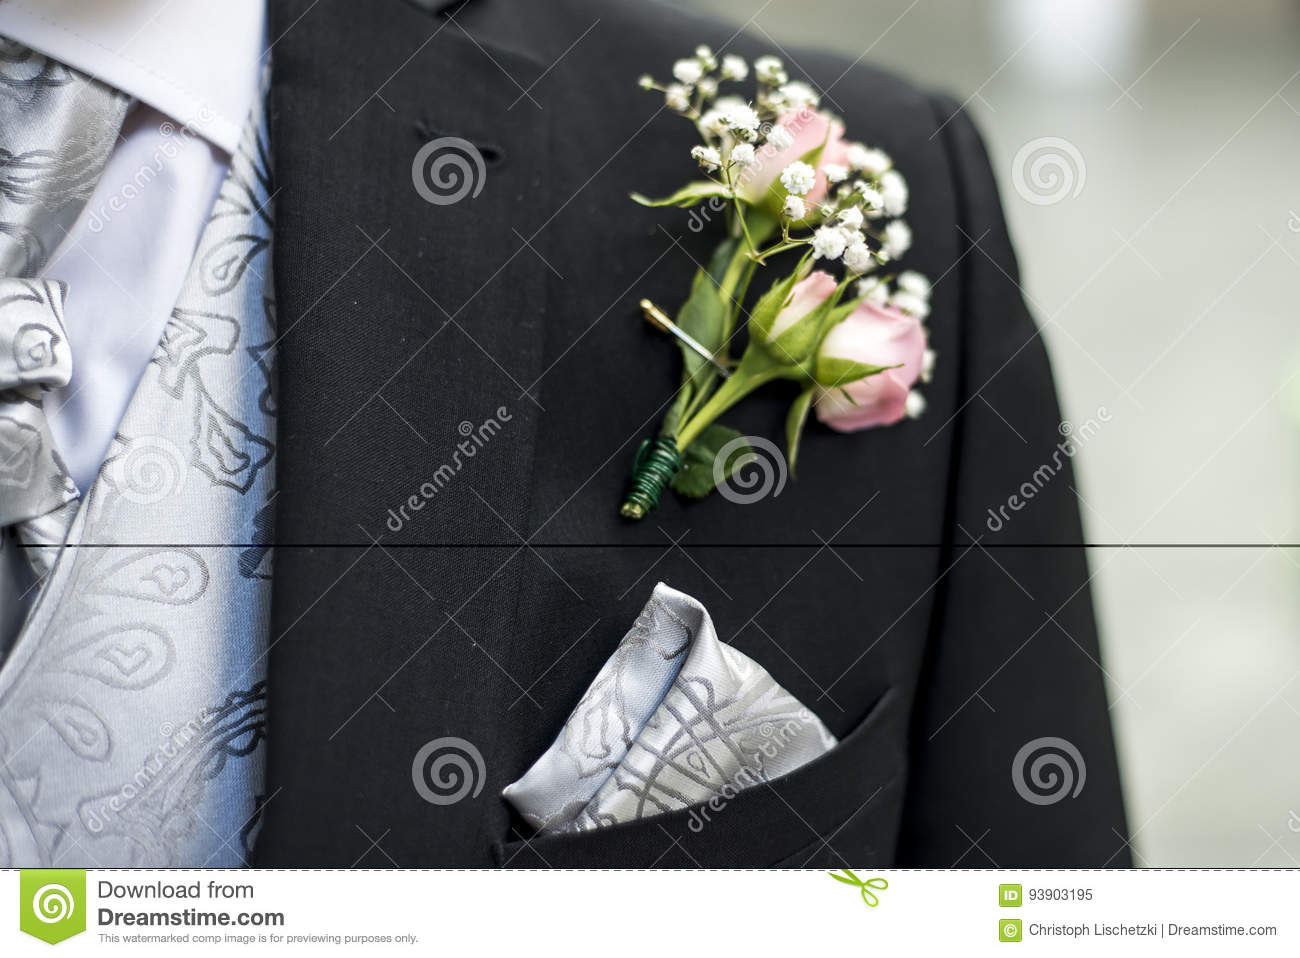 9109a2085ef7 Pink Rose Boutonniere Flower Groom Wedding Coat With Tie Shirt Stock ...